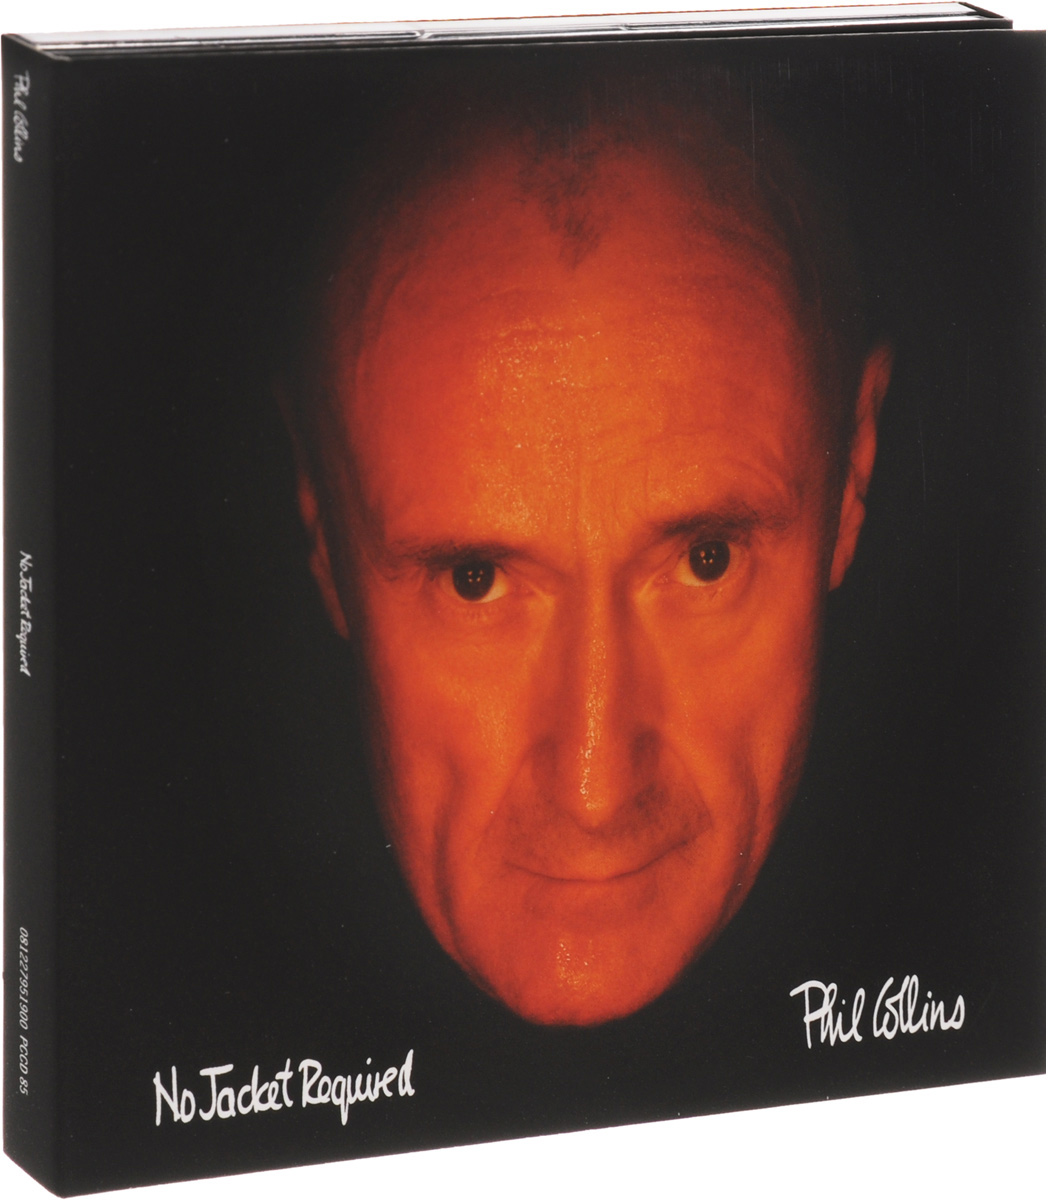 Фил Коллинз Phil Collins. No Jacket Required. Deluxe Edition (2 CD) phil collins the singles 2 cd